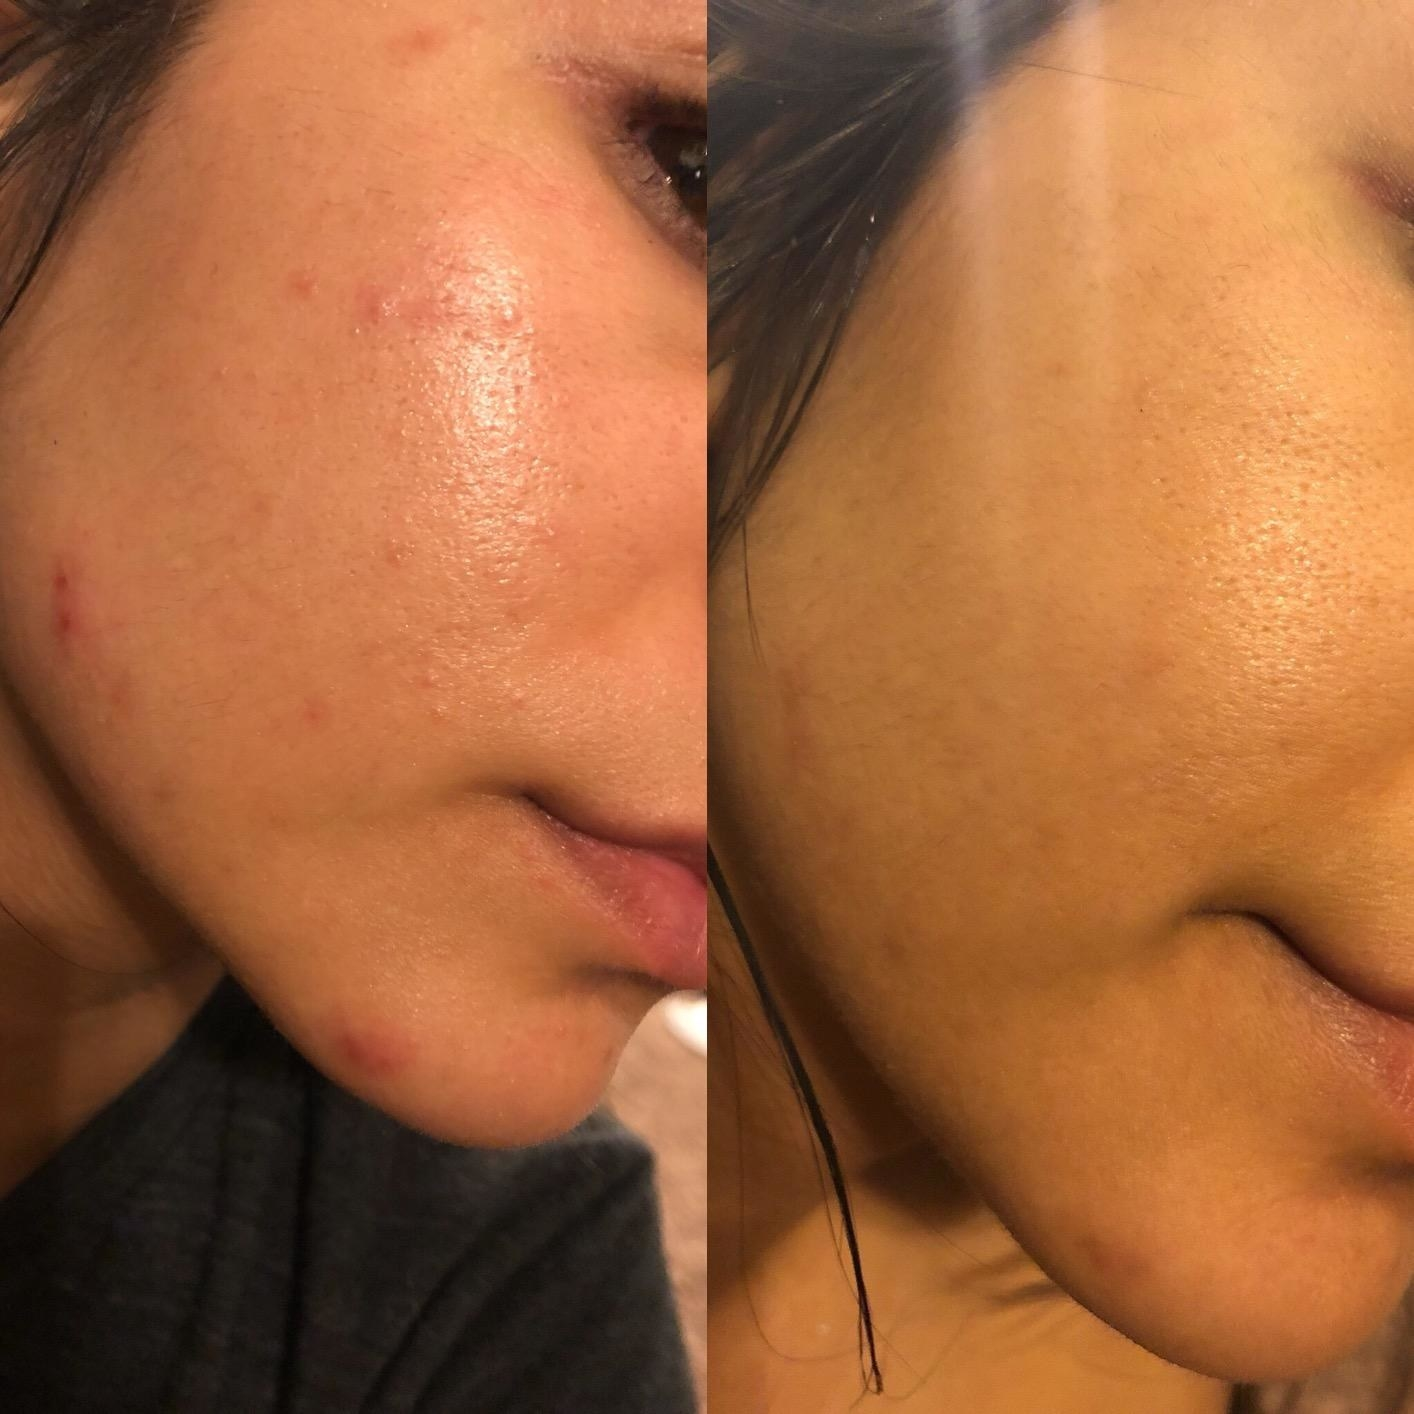 A reviewer's cheek in two images: one with active acne, texture and redness, the other with no active acne and less texture